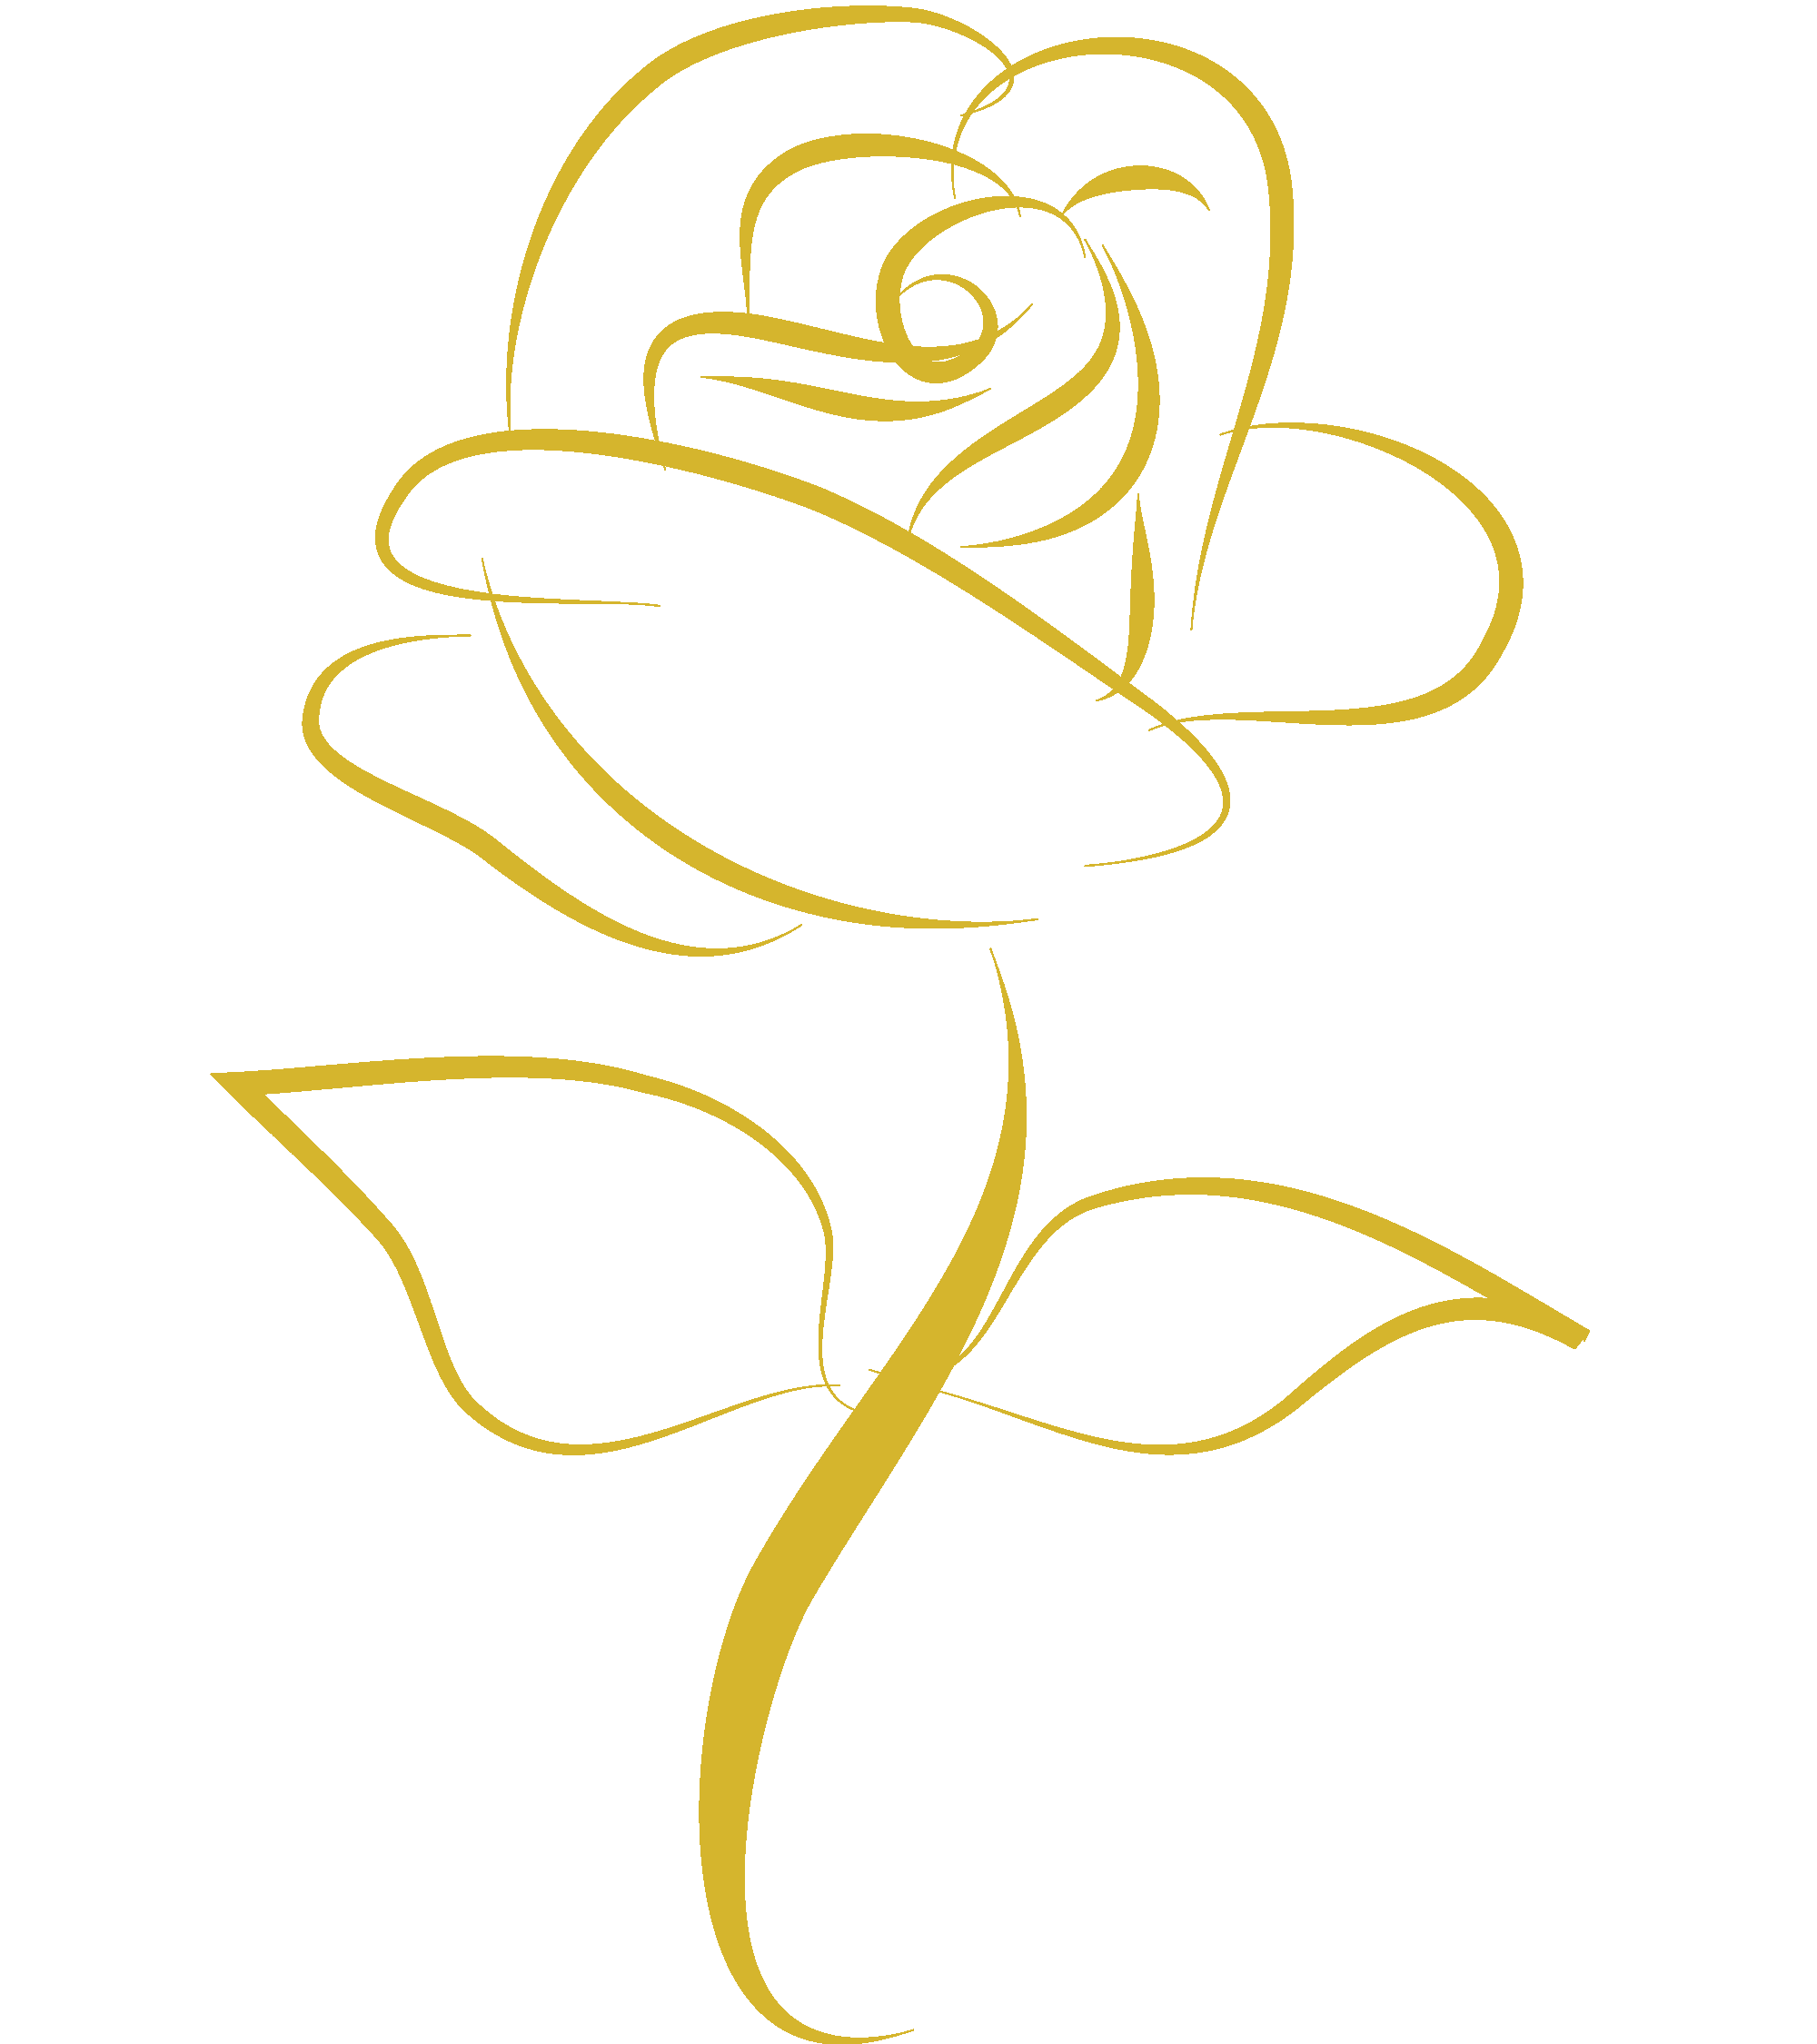 gold rose clipart 20 free Cliparts | Download images on ... - Beautiful Black and White Roses